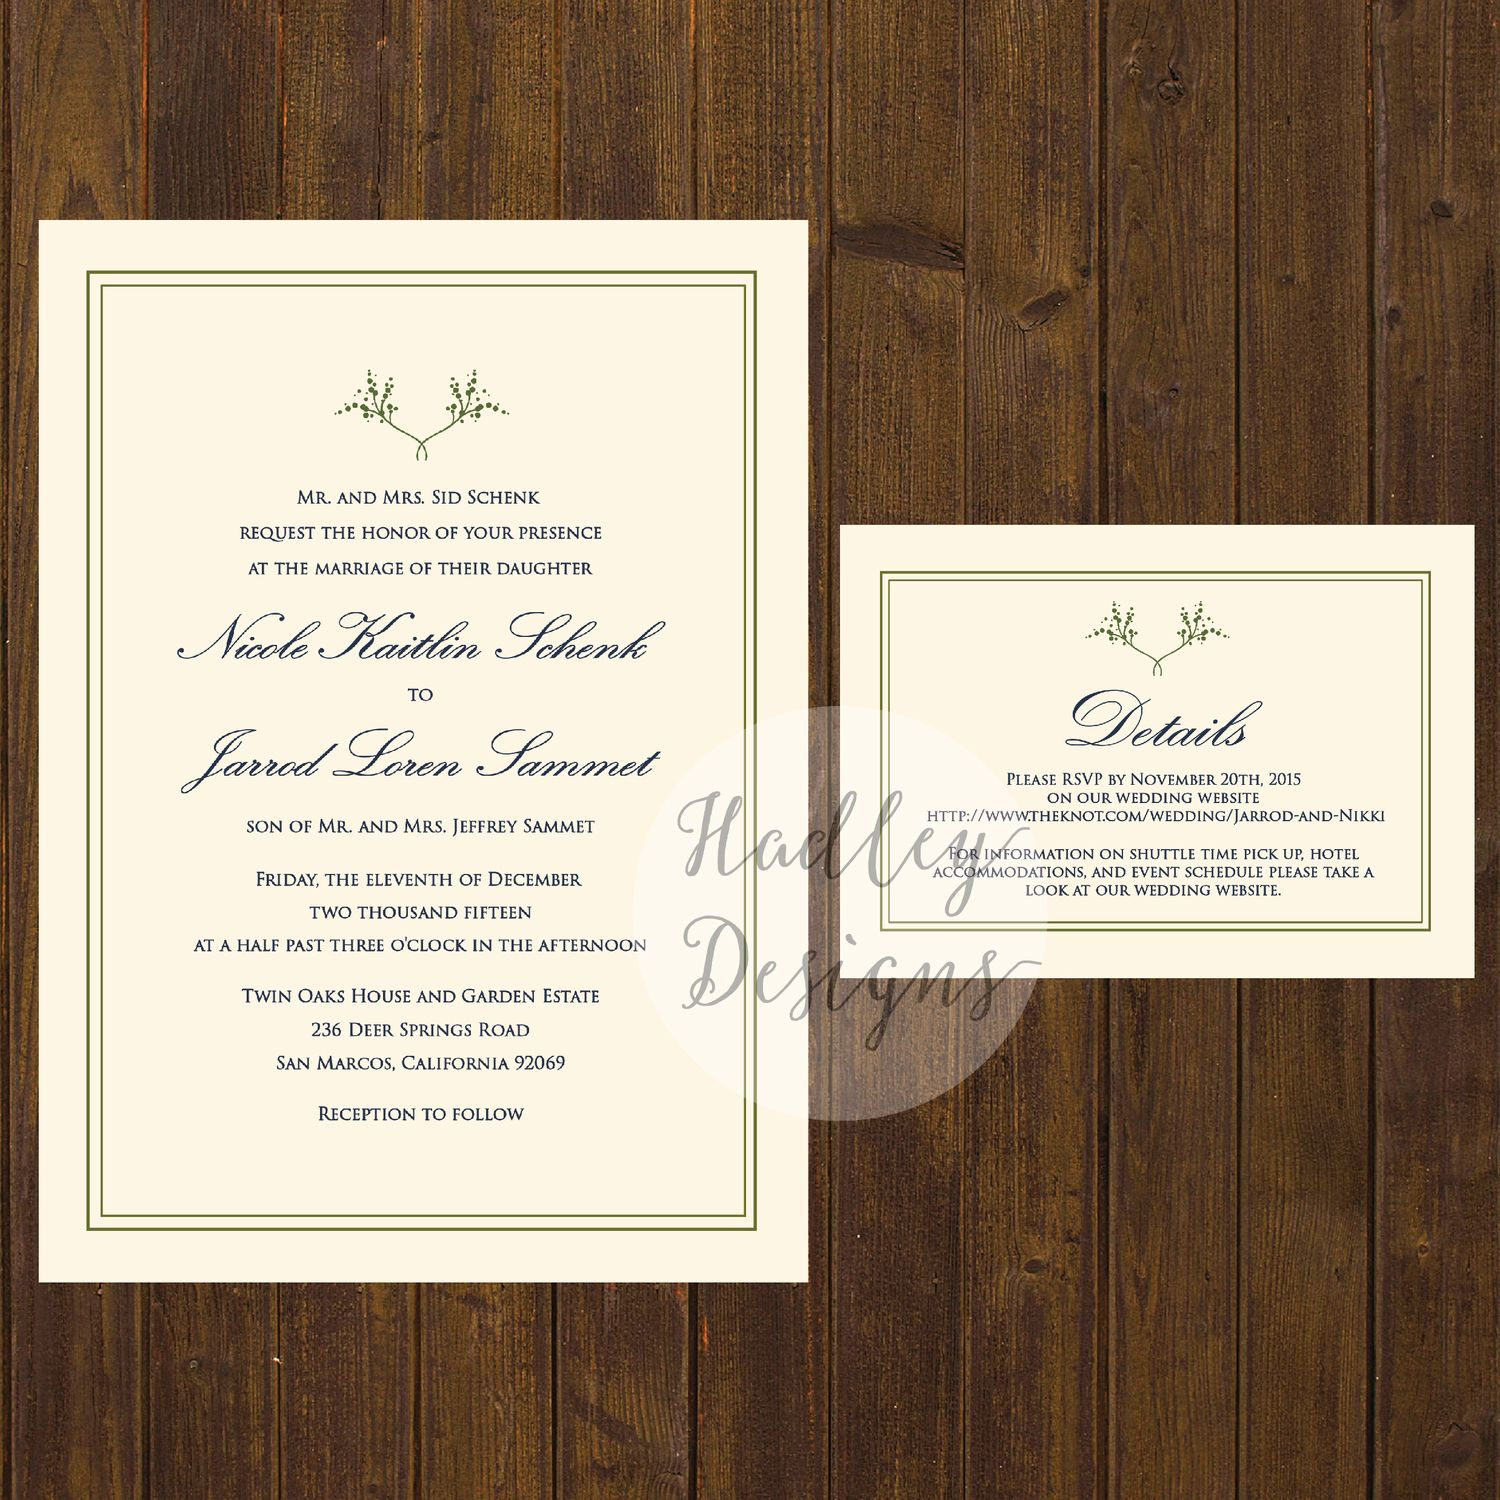 Elegant Wedding Invitations, Classic Wedding Invitations, Formal ...